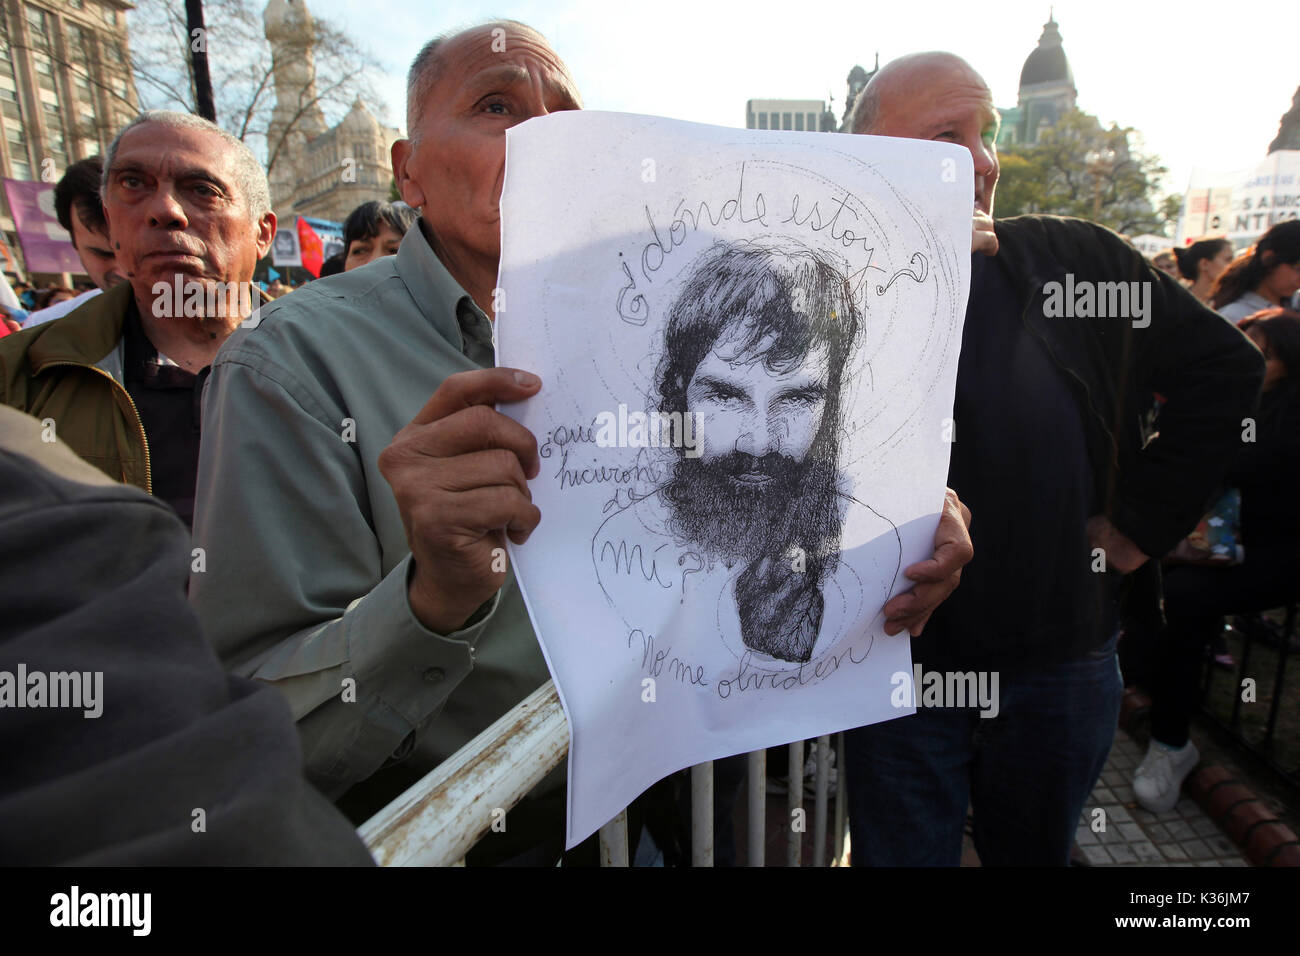 Buenos Aires, Buenos Aires, Argentina. 1st Sep, 2017. A demonstration was carried out to ask for the appearance of Santiago Maldonado, the artisan whose whereabouts has not been known since August 1st. Credit: Claudio Santisteban/ZUMA Wire/Alamy Live News - Stock Image